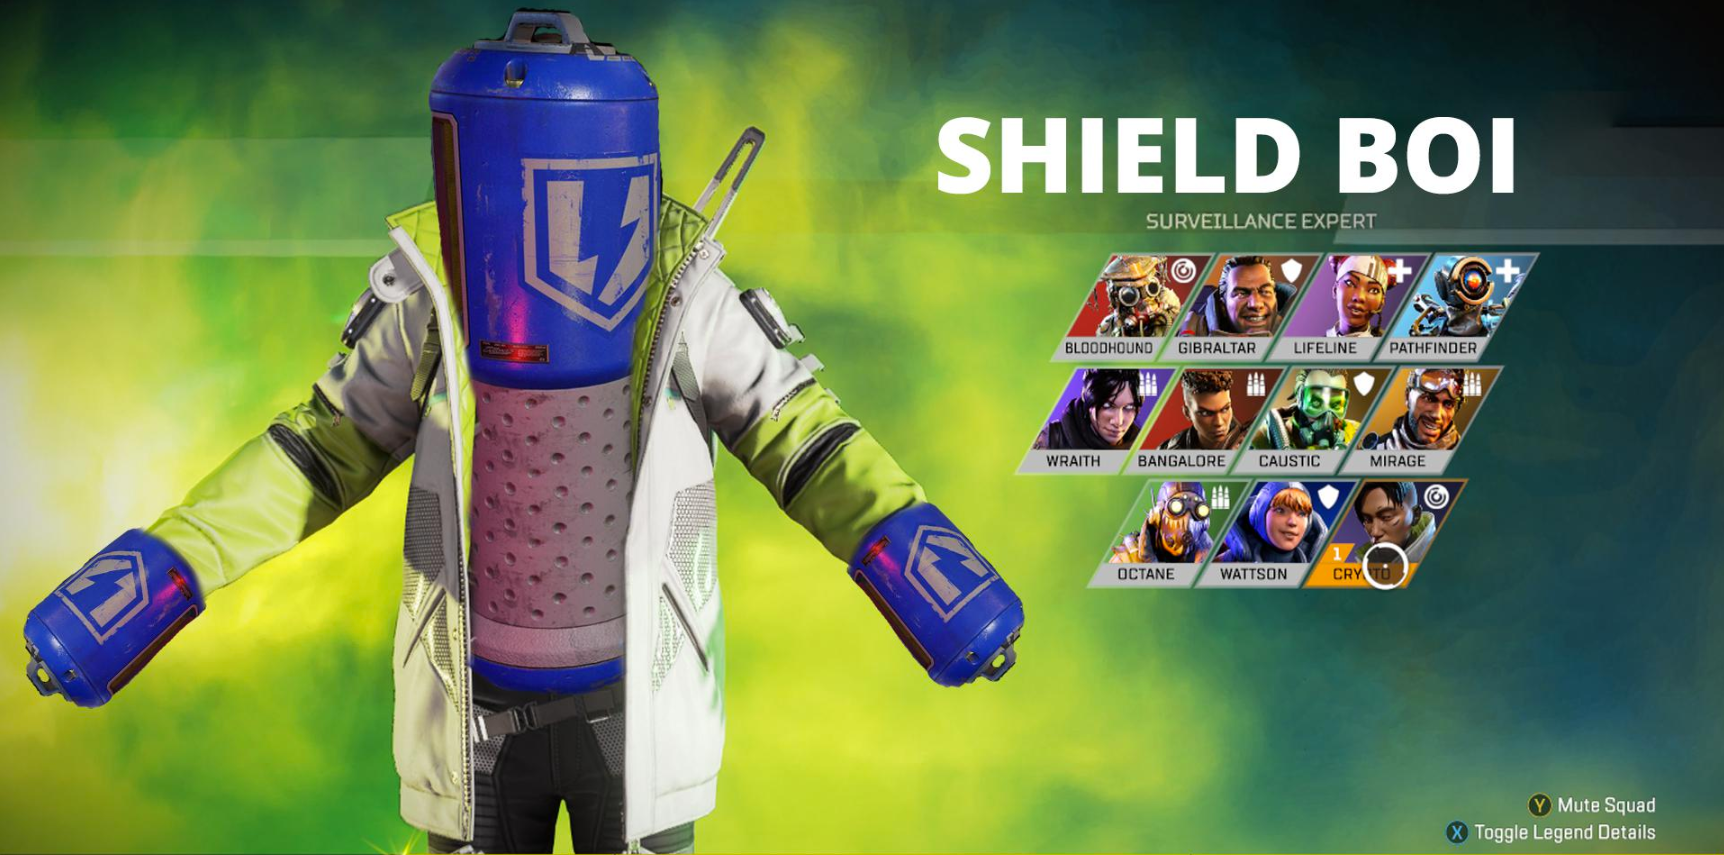 Shield BOI